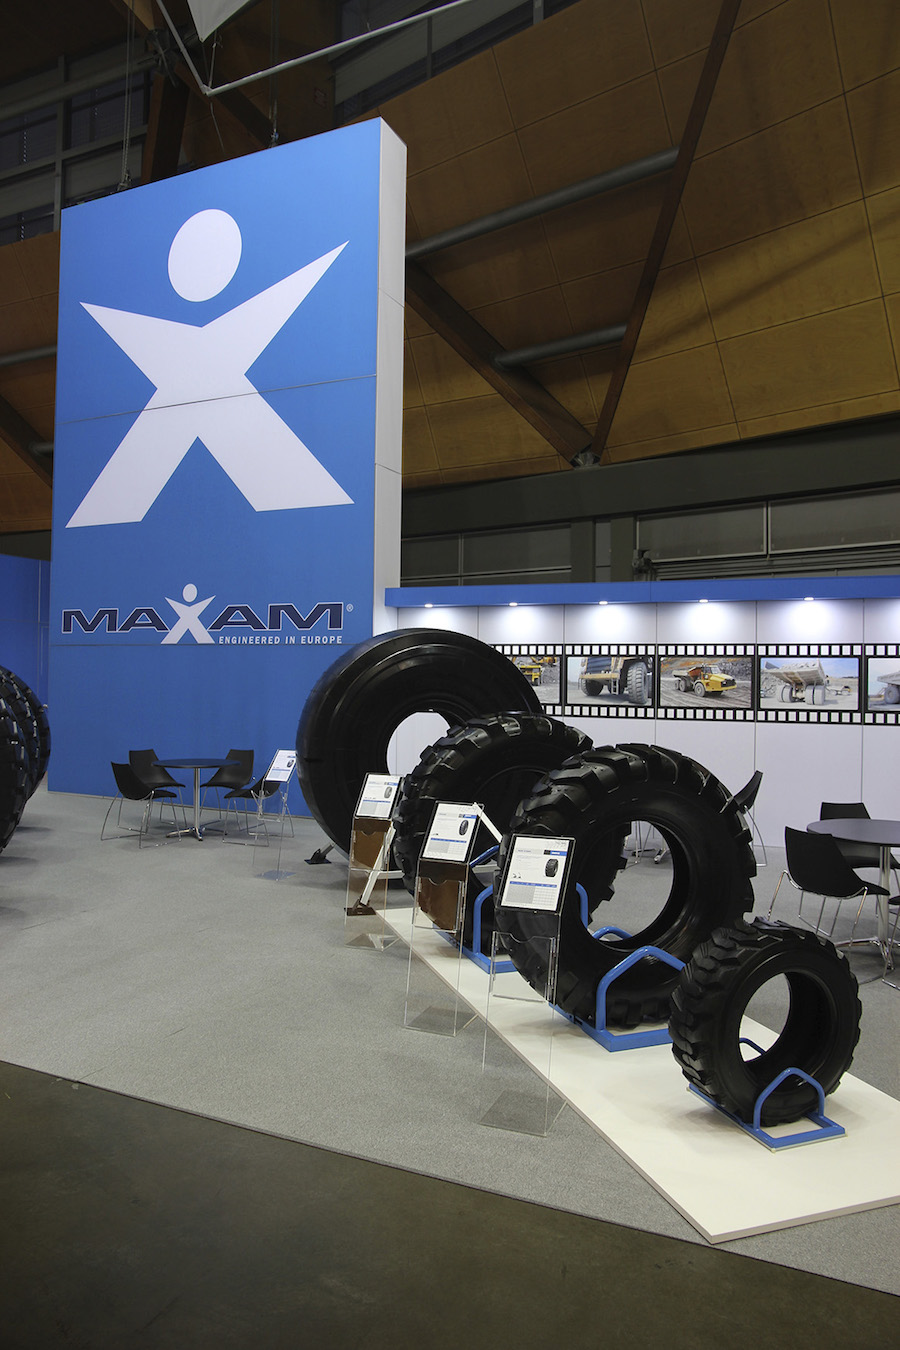 360-display-retail-expo-systems-stands-hire-designers-sydney-melbourne-newcastle-gold-coast-brisbane-Maxam-Tire-2.jpg